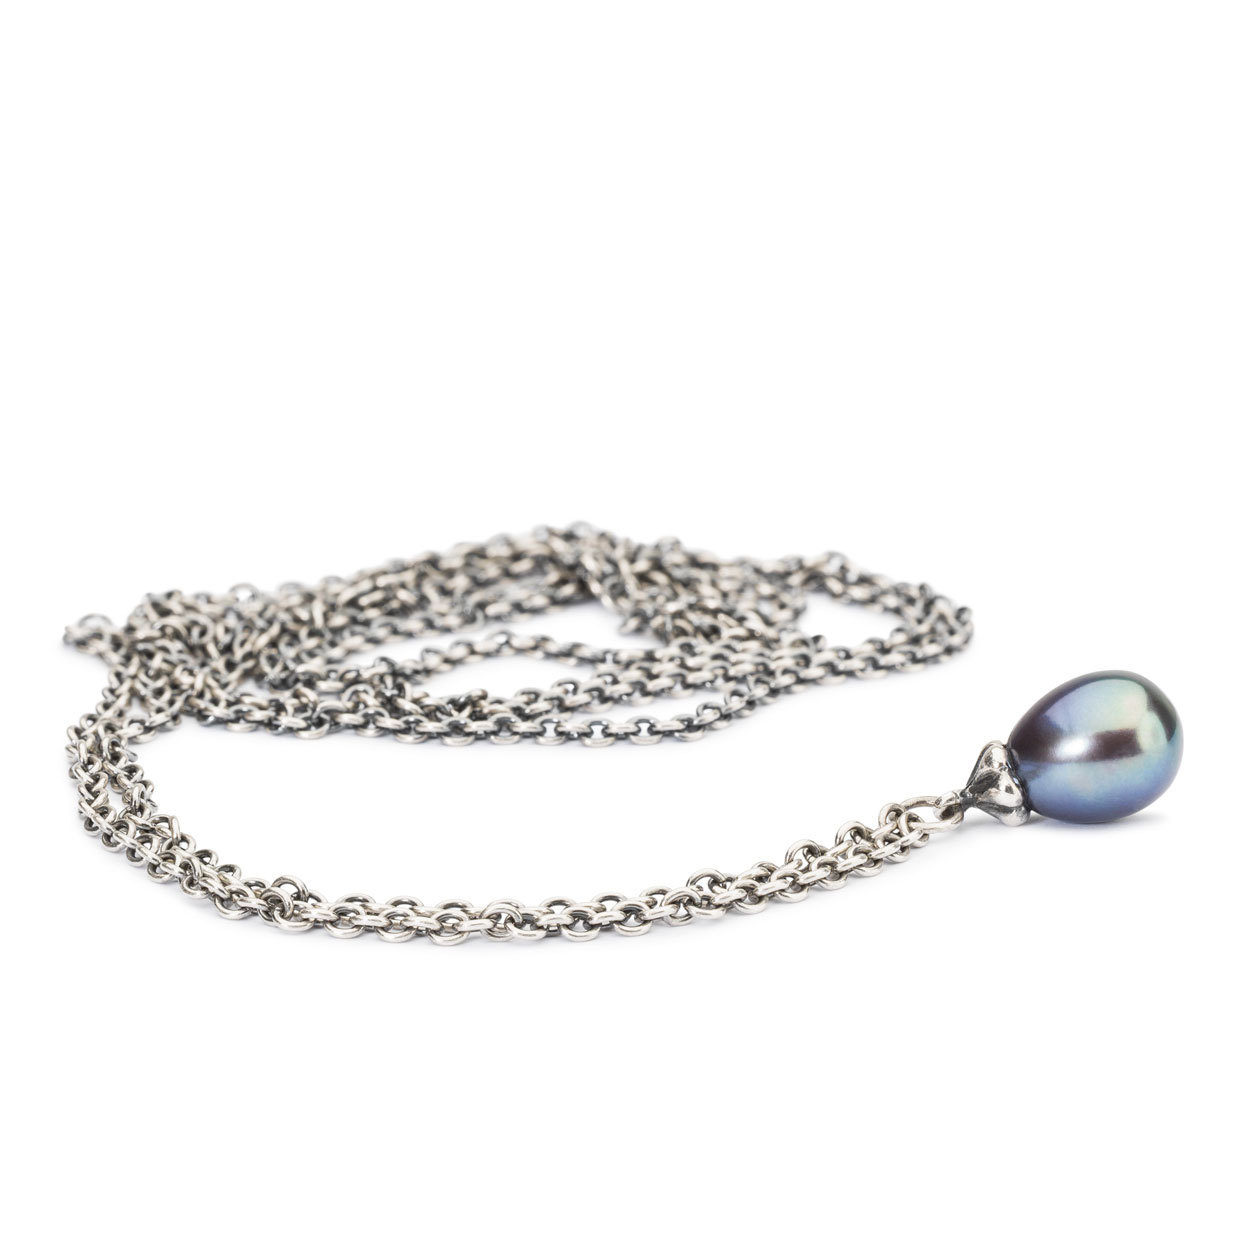 Trollbeads TAGFA-00057 Ketting Peacock Parel zilver 70 cm